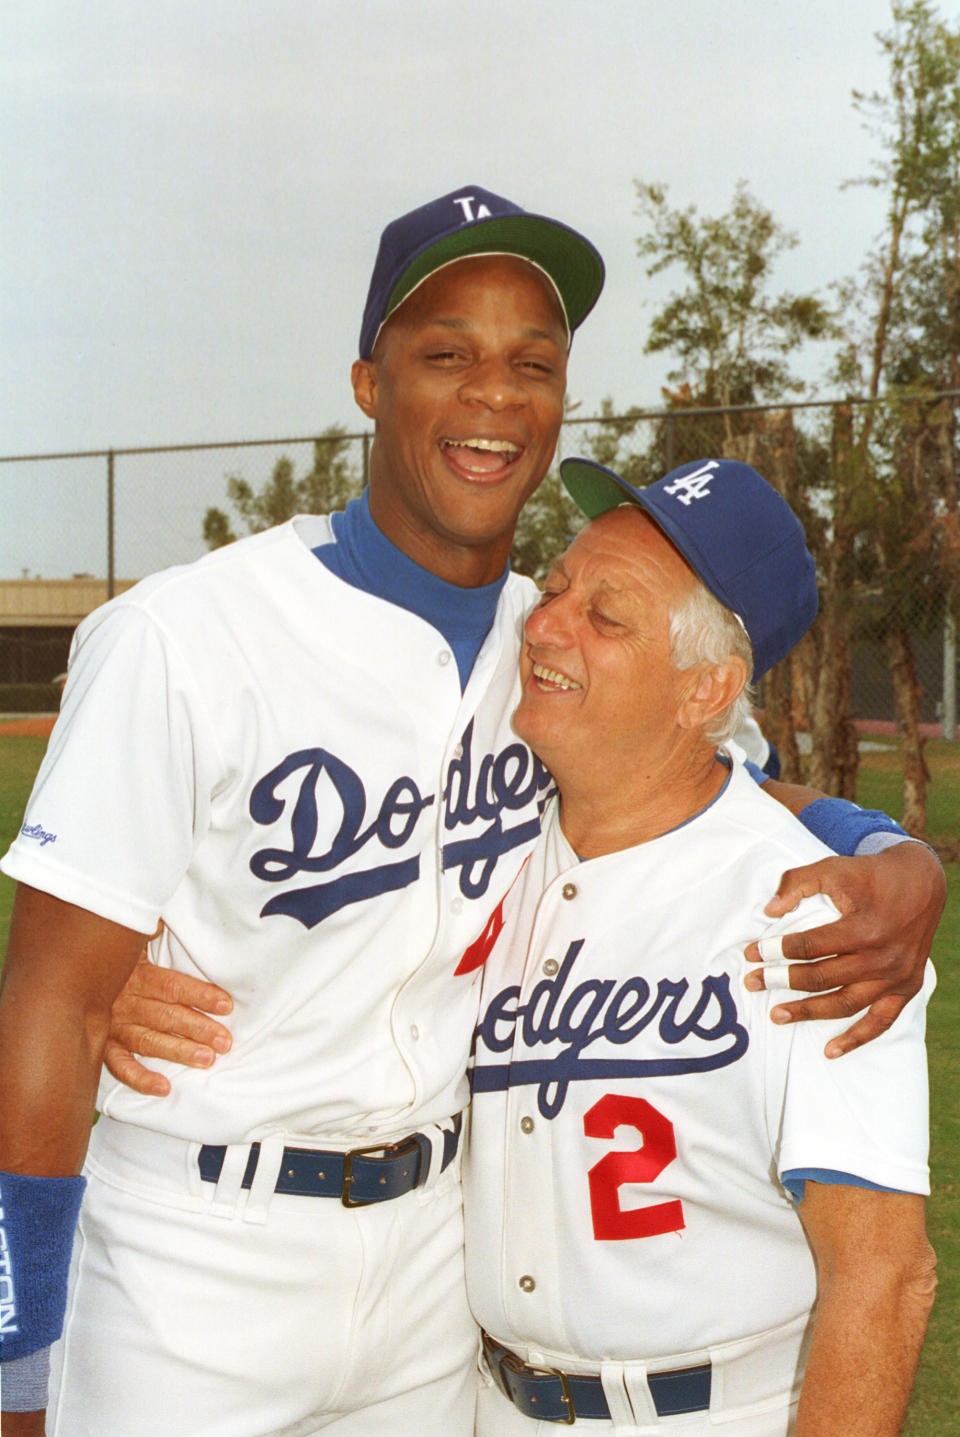 Los Angeles Dodgers manager Tommy Lasorda gives a team welcome to outfielder Darryl Strawberry during spring training at Dodgertown in Vero Beach, Fla., Wednesday morning, Feb. 27, 1991. (AP Photo/Richard Drew)